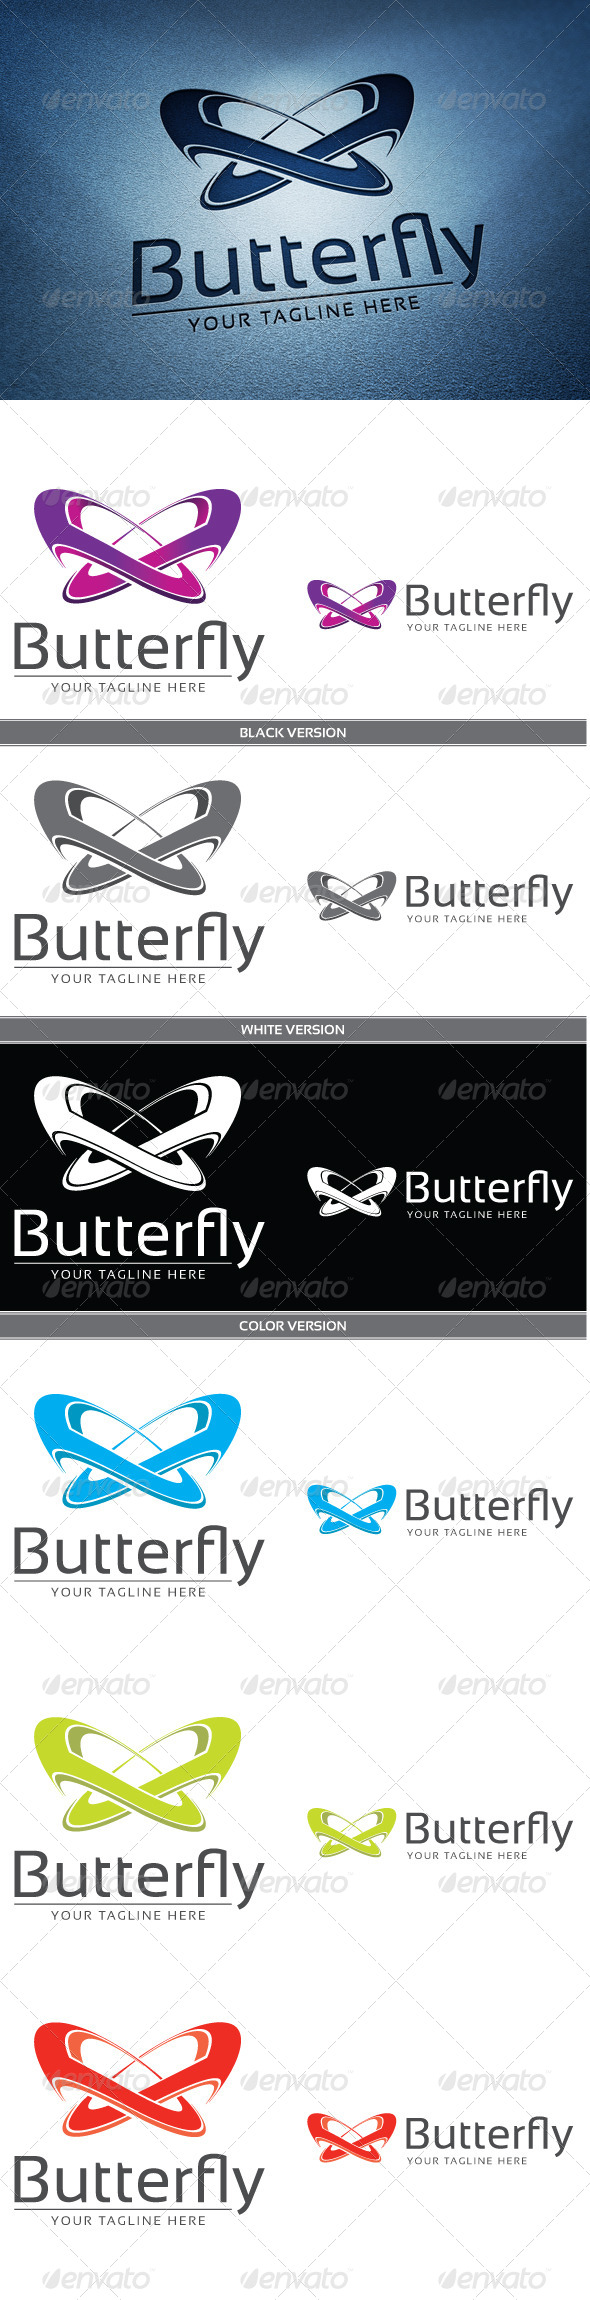 GraphicRiver Butterfly 4244427